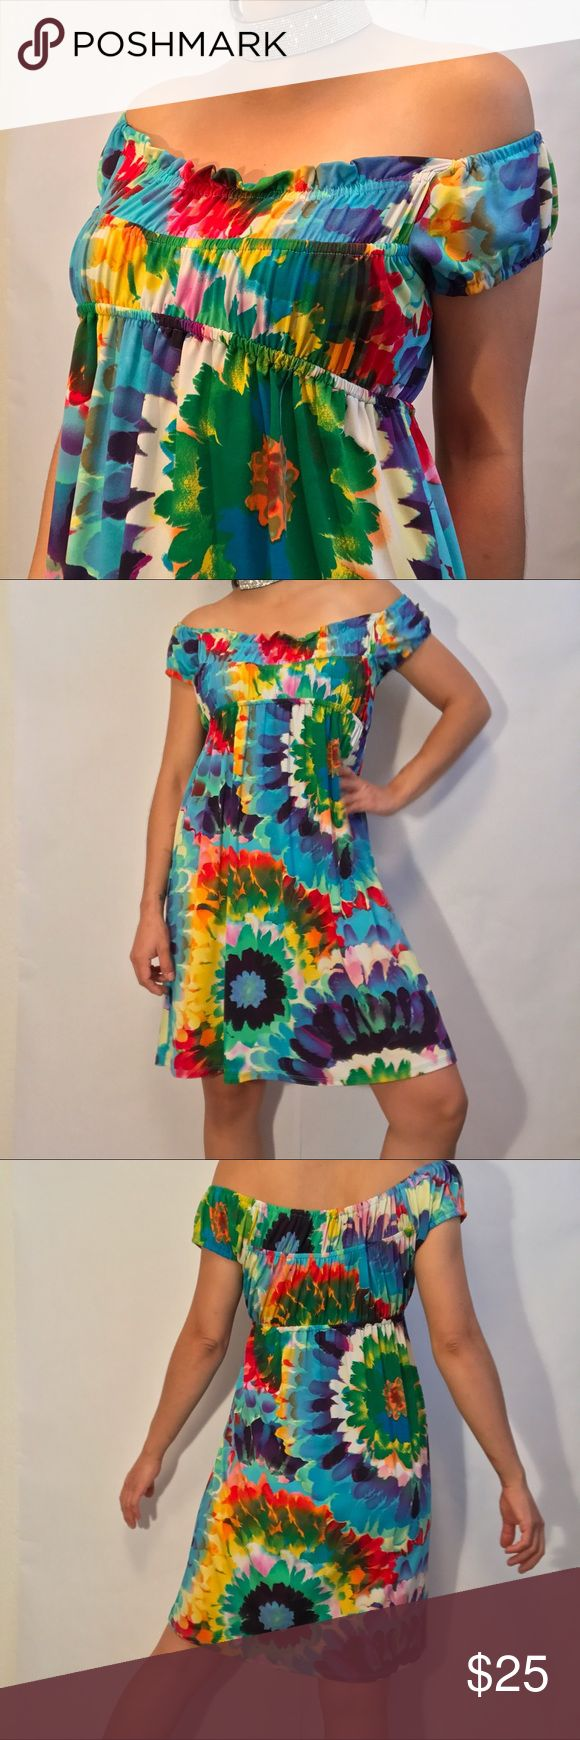 Tiana B. Rainbow tie dye dress Tiana B. Off the shoulder dress,  in perfect condition. Super bright multicolored fabric, silky cool feel perfect for summer BBQs🍗 with some baby blue woven wedges. Dresses Midi